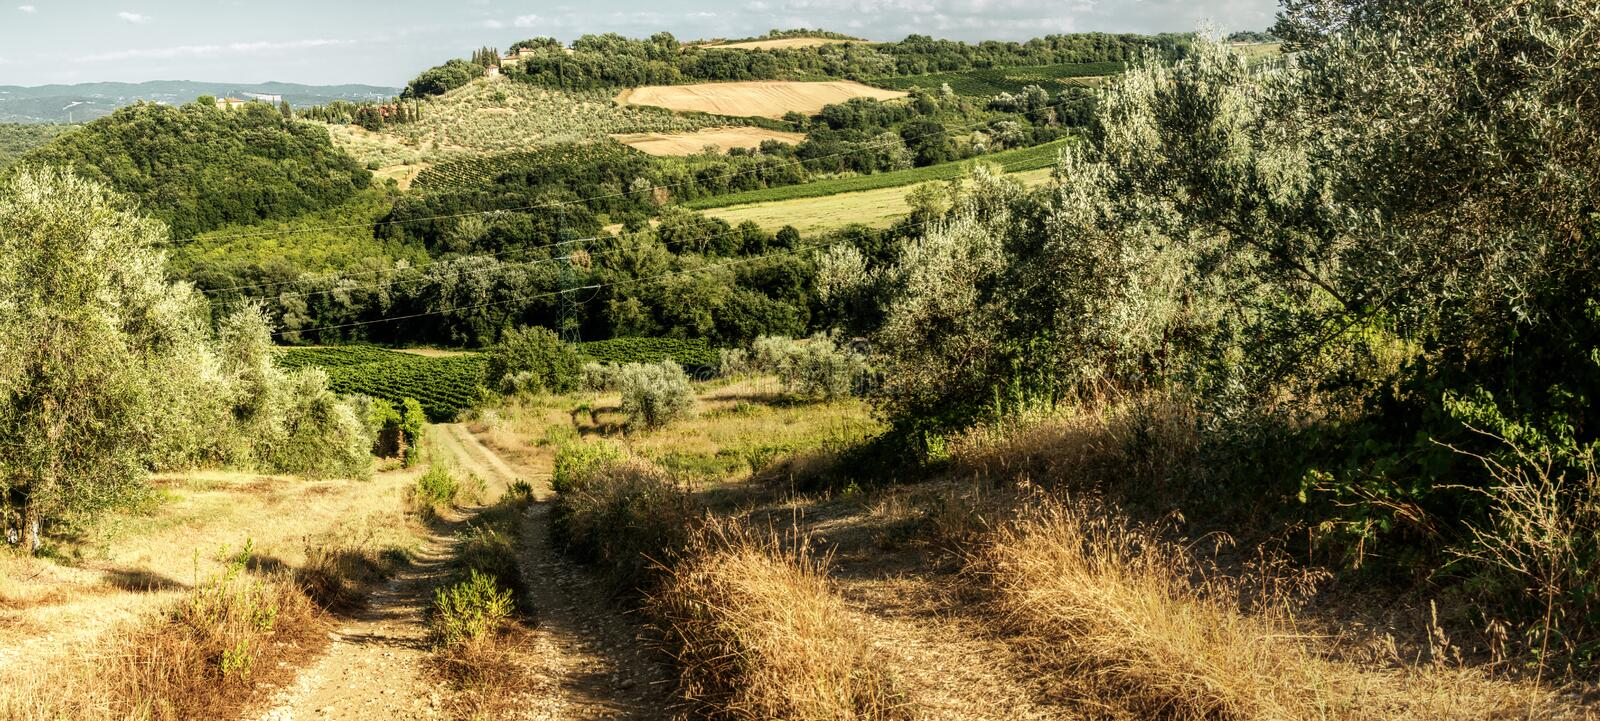 Dirt track in the Tuscan countryside. A meadow between olive groves shows the ruts of occasional farm vehicles lit in the sunrise royalty free stock photography